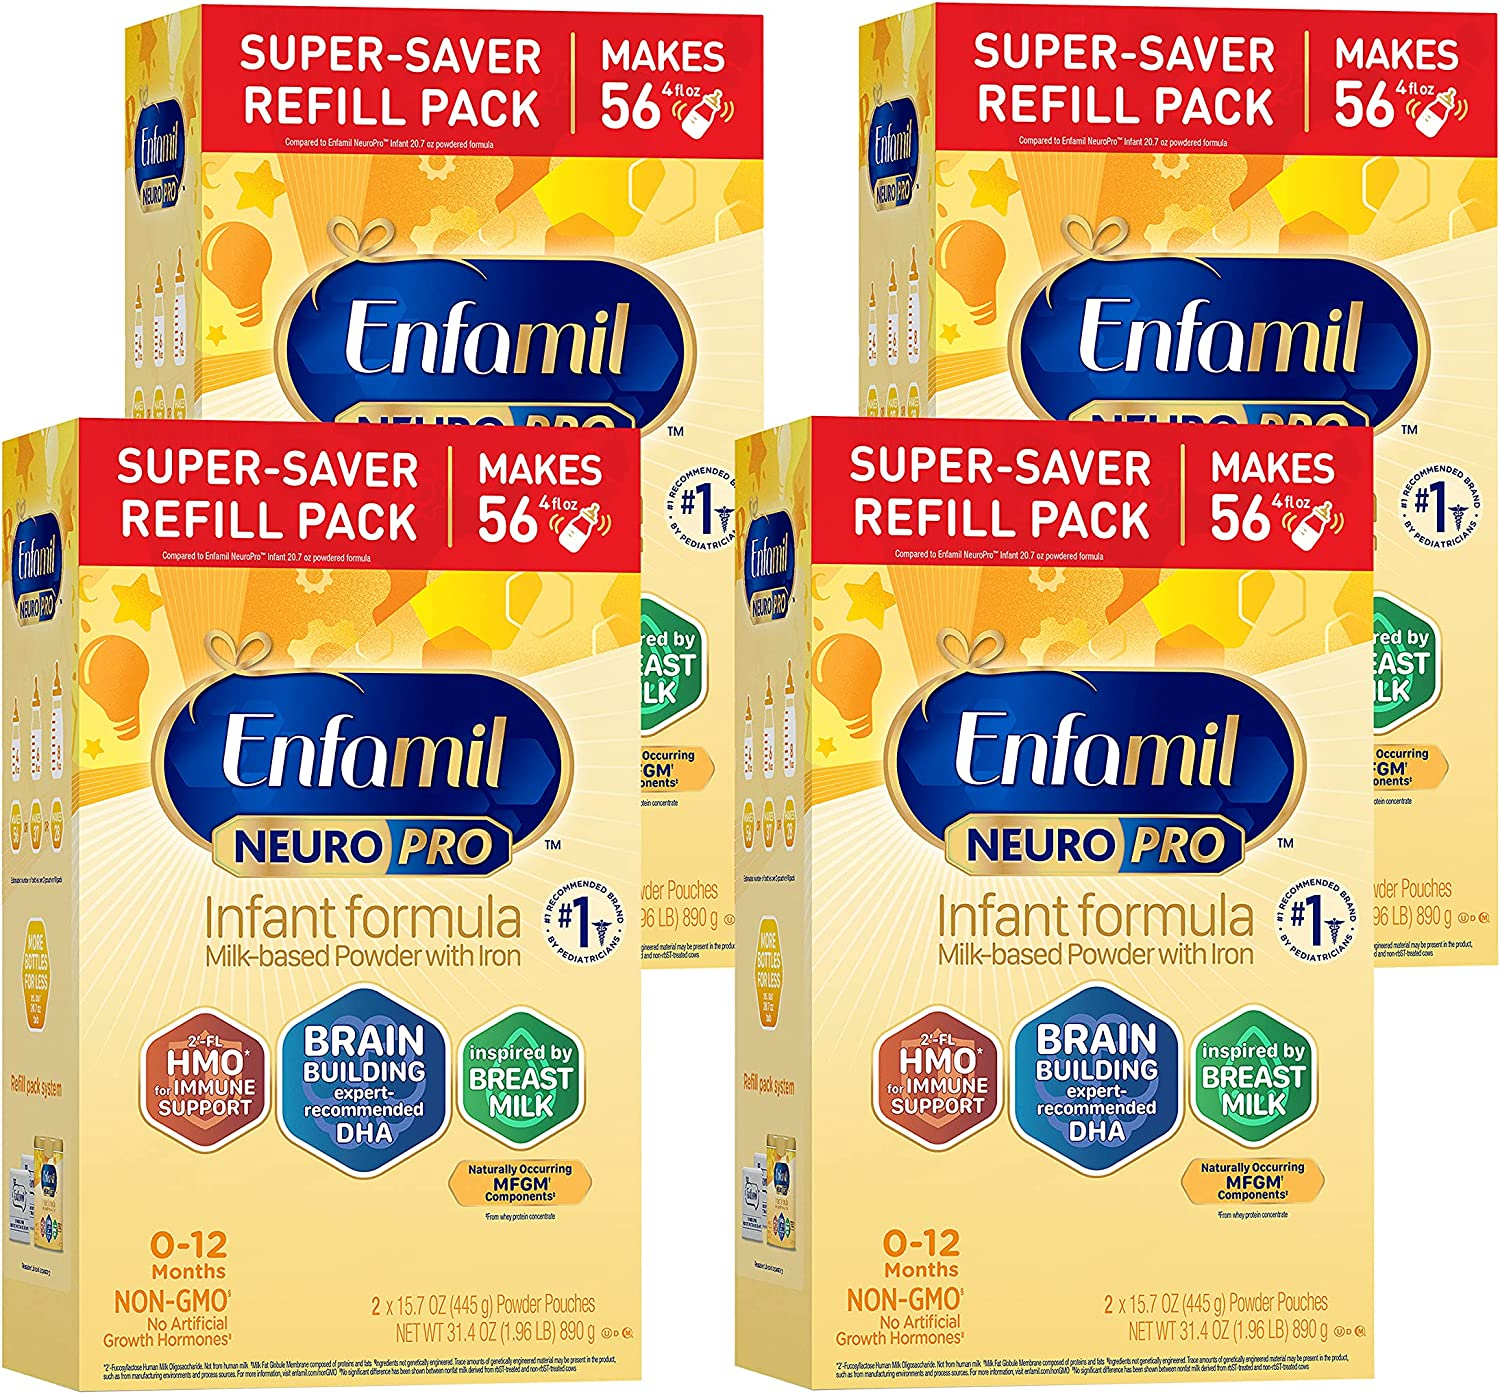 Enfamil Boston Mall Weekly update NeuroPro Baby Formula Brain Immune and with DHA Support